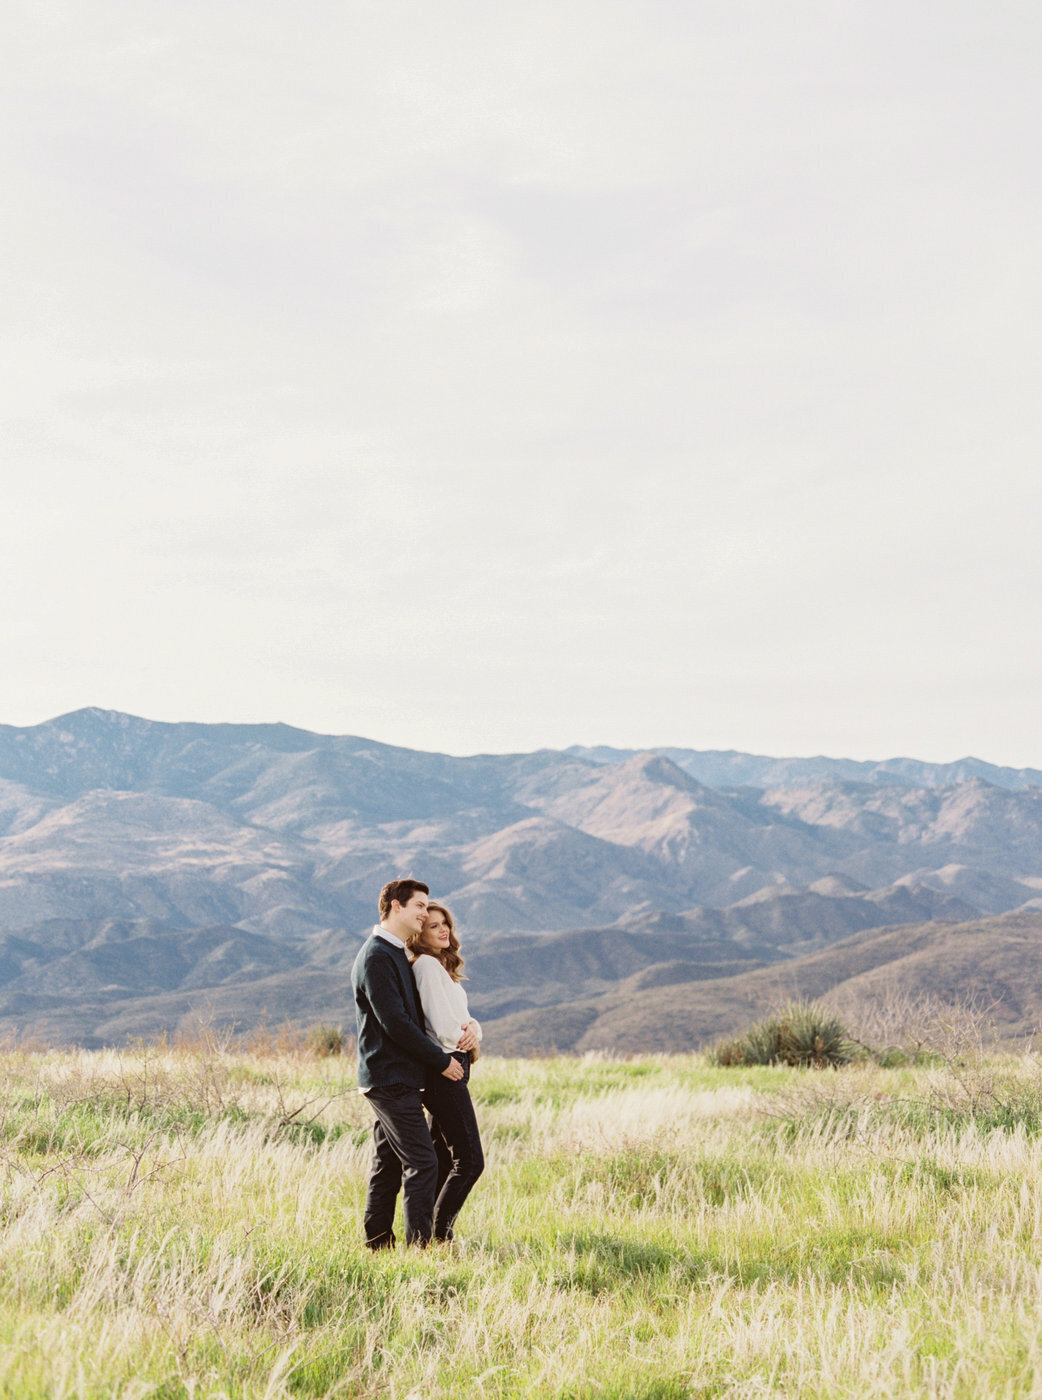 Arizona-wedding-photographer-engagement-21